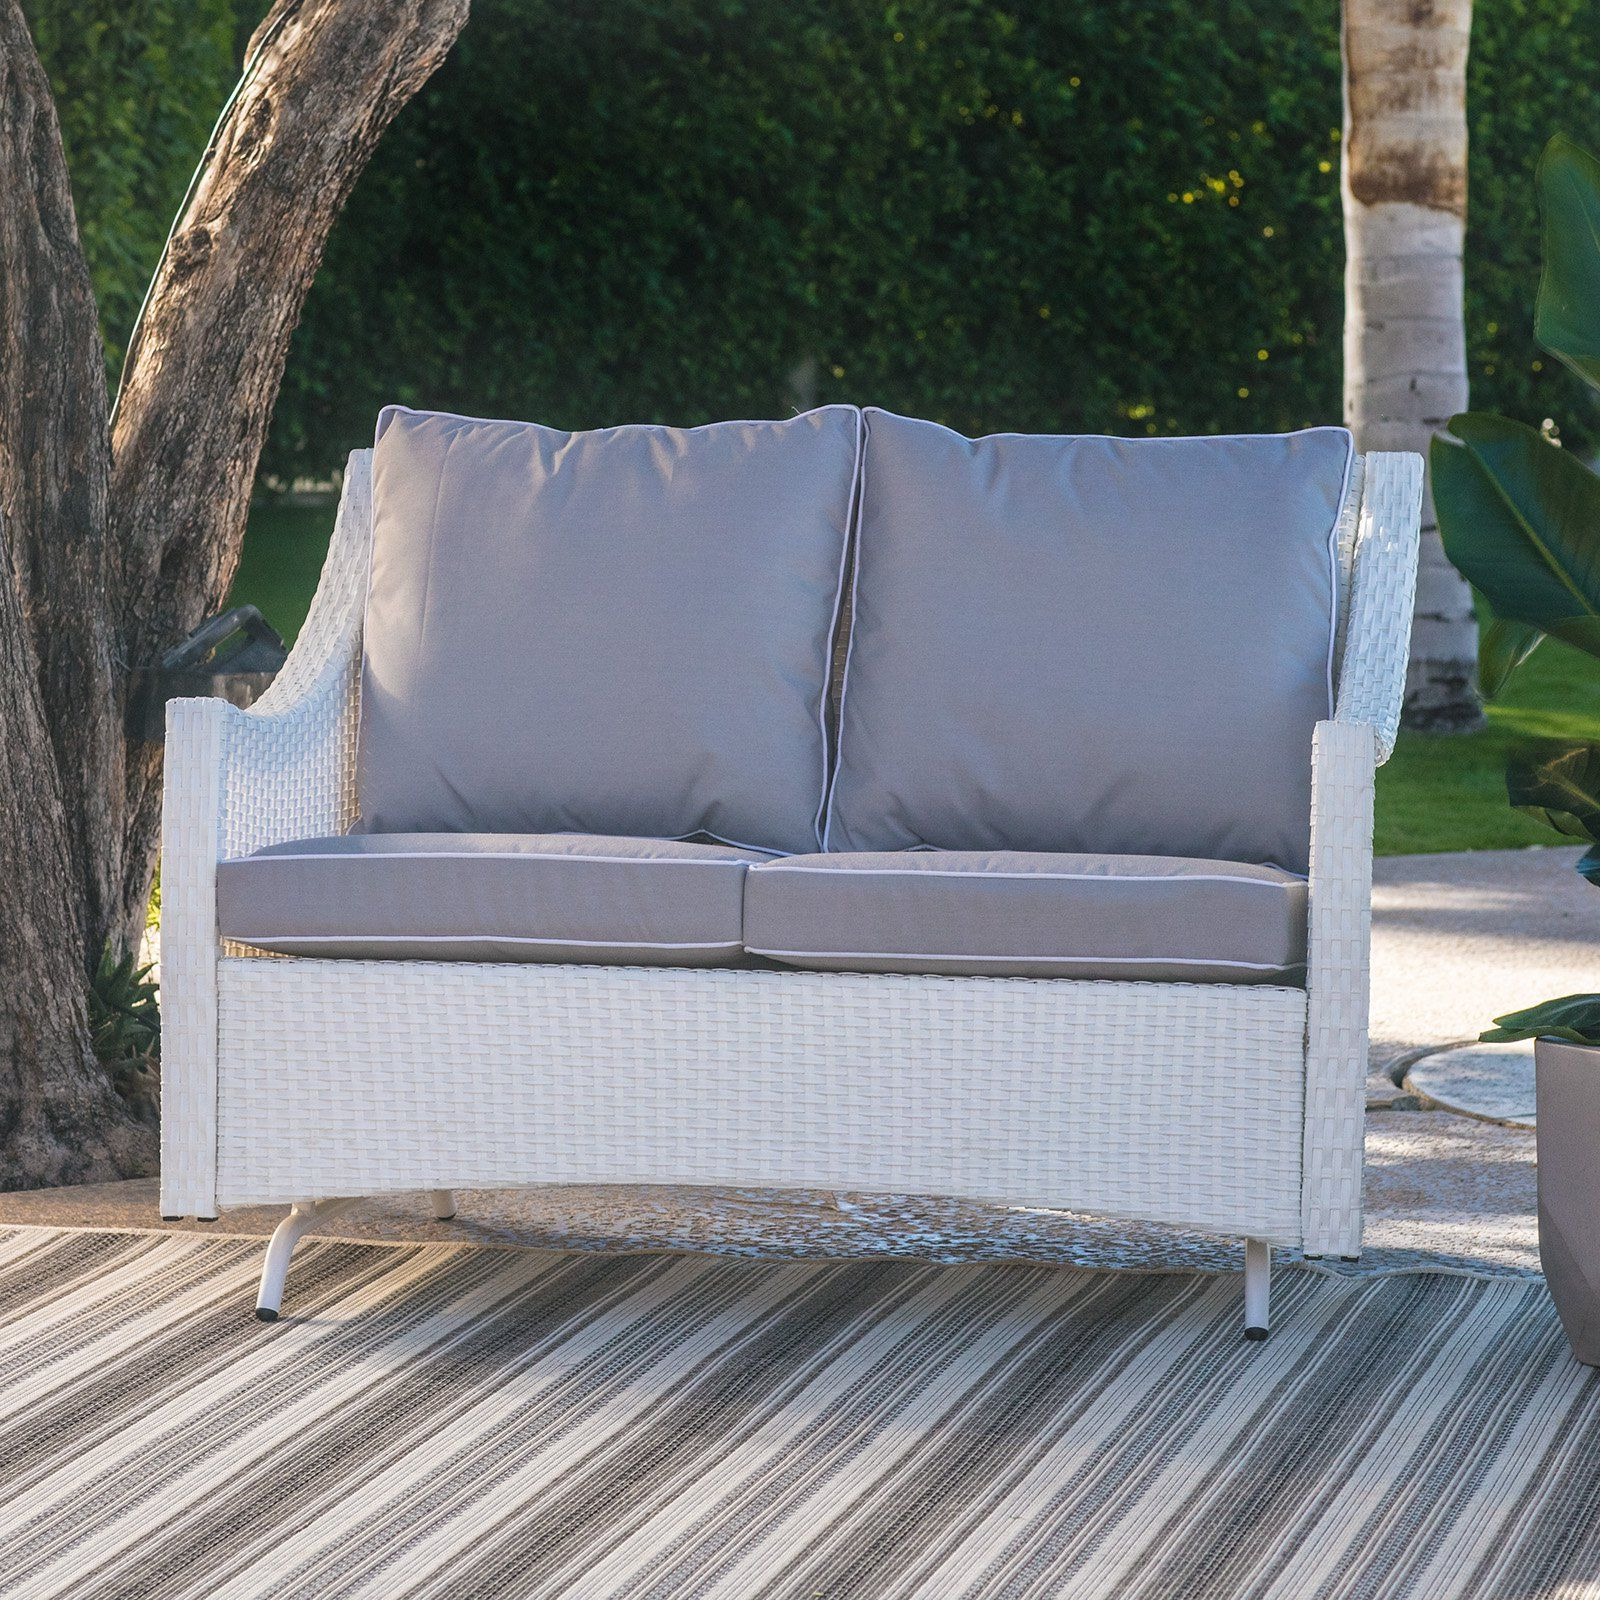 Castelli Loveseats With Cushions Regarding Most Popular Belham Living Lindau All Weather Wicker Patio Loveseat (View 16 of 20)